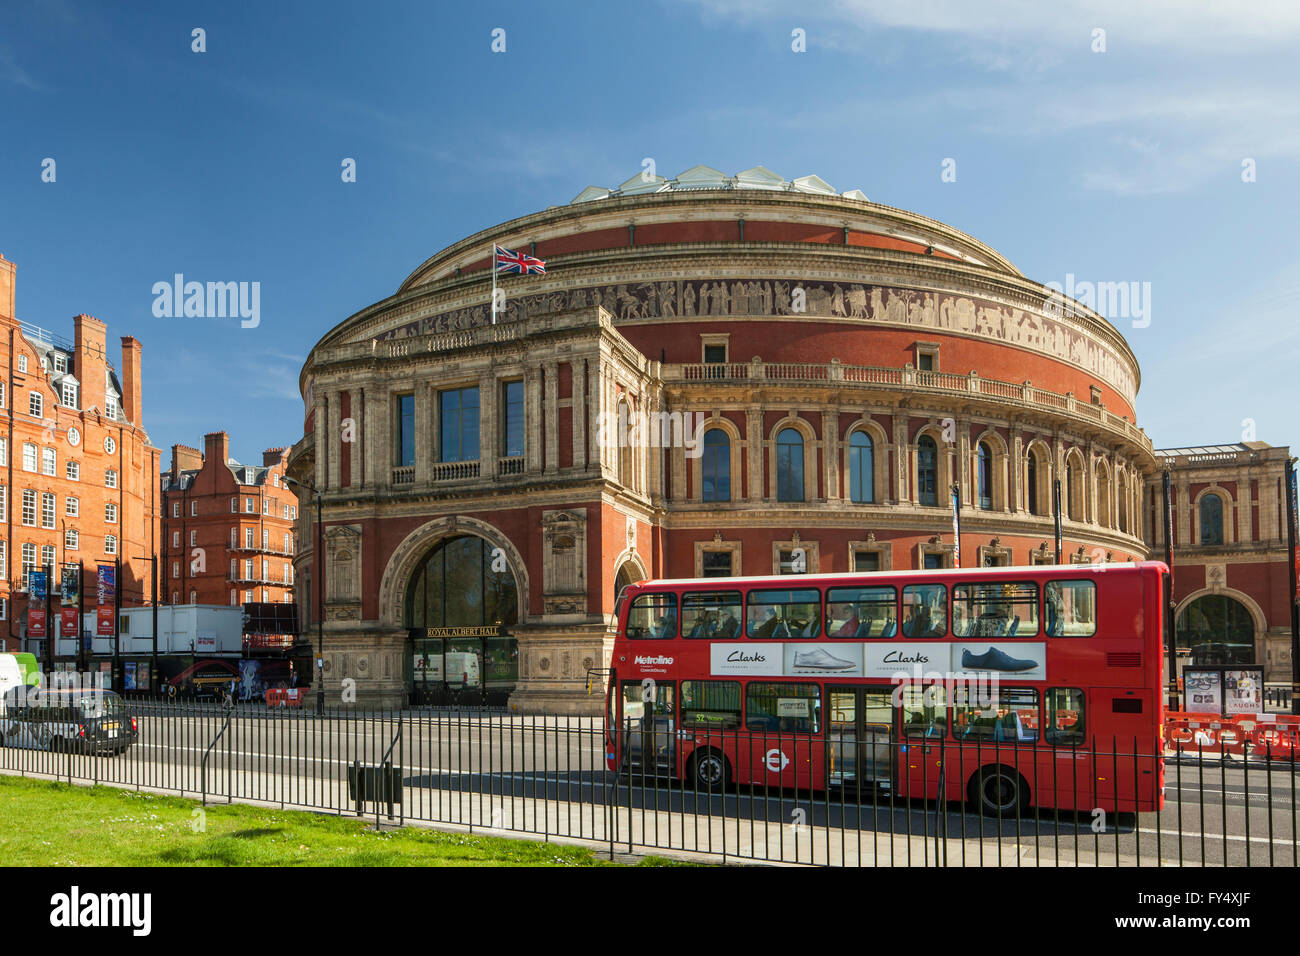 Iconic red double decker bus passes in front of Royal Albert Hall in Kensington, London, England. - Stock Image